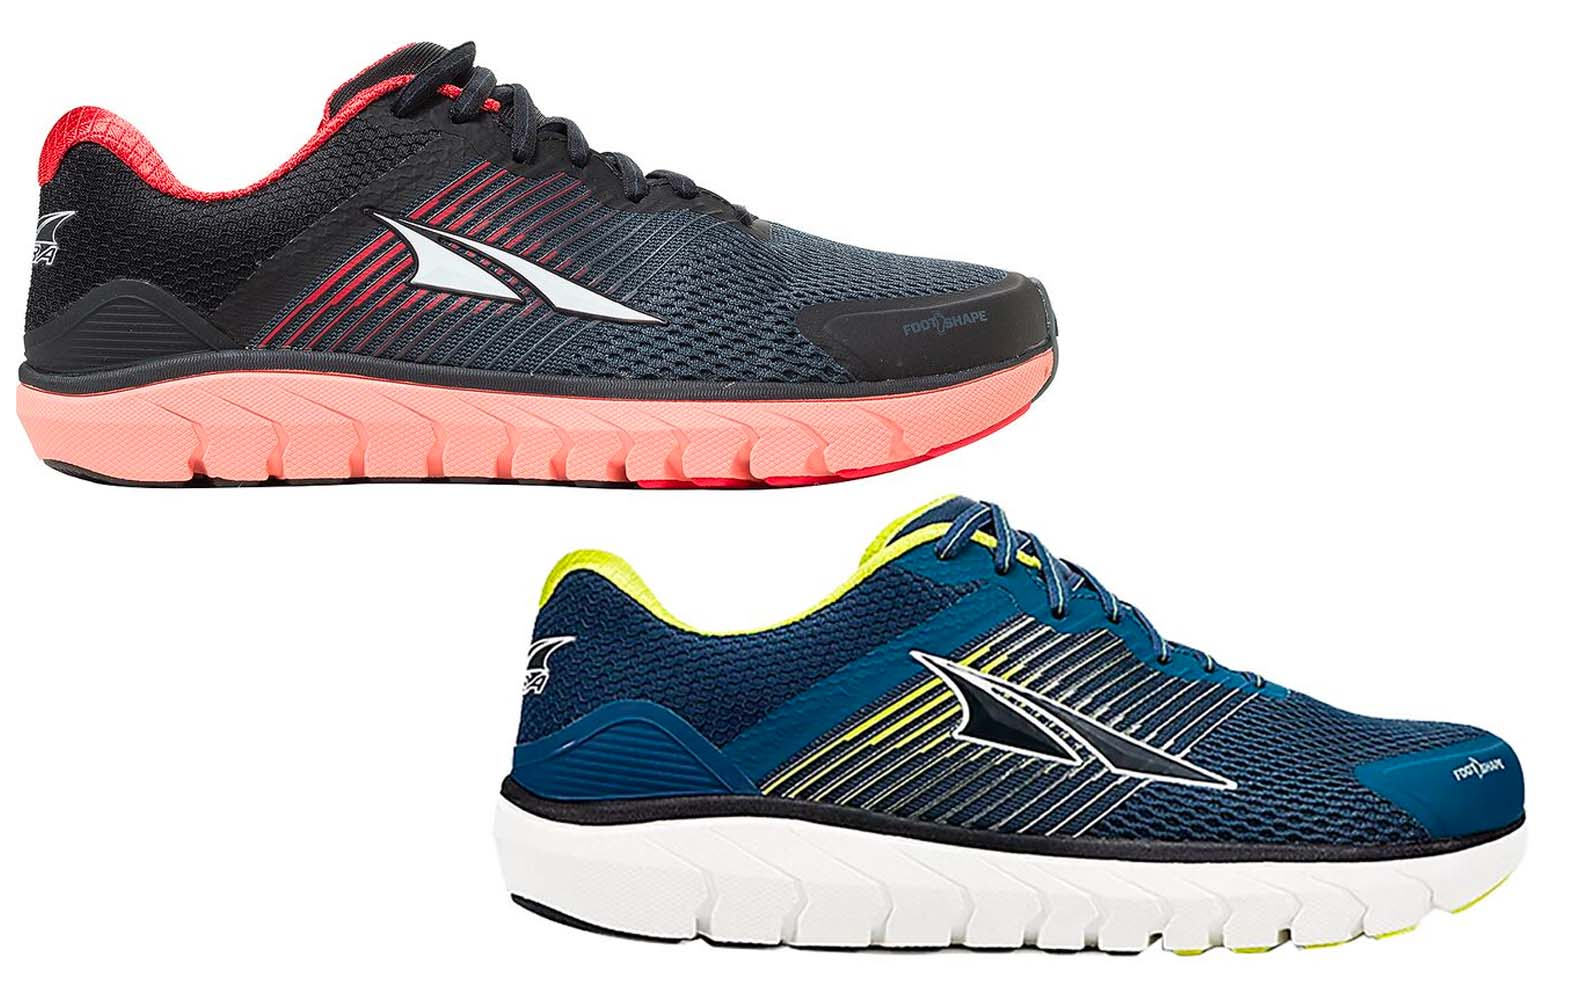 altra provision 4.0 running shoes